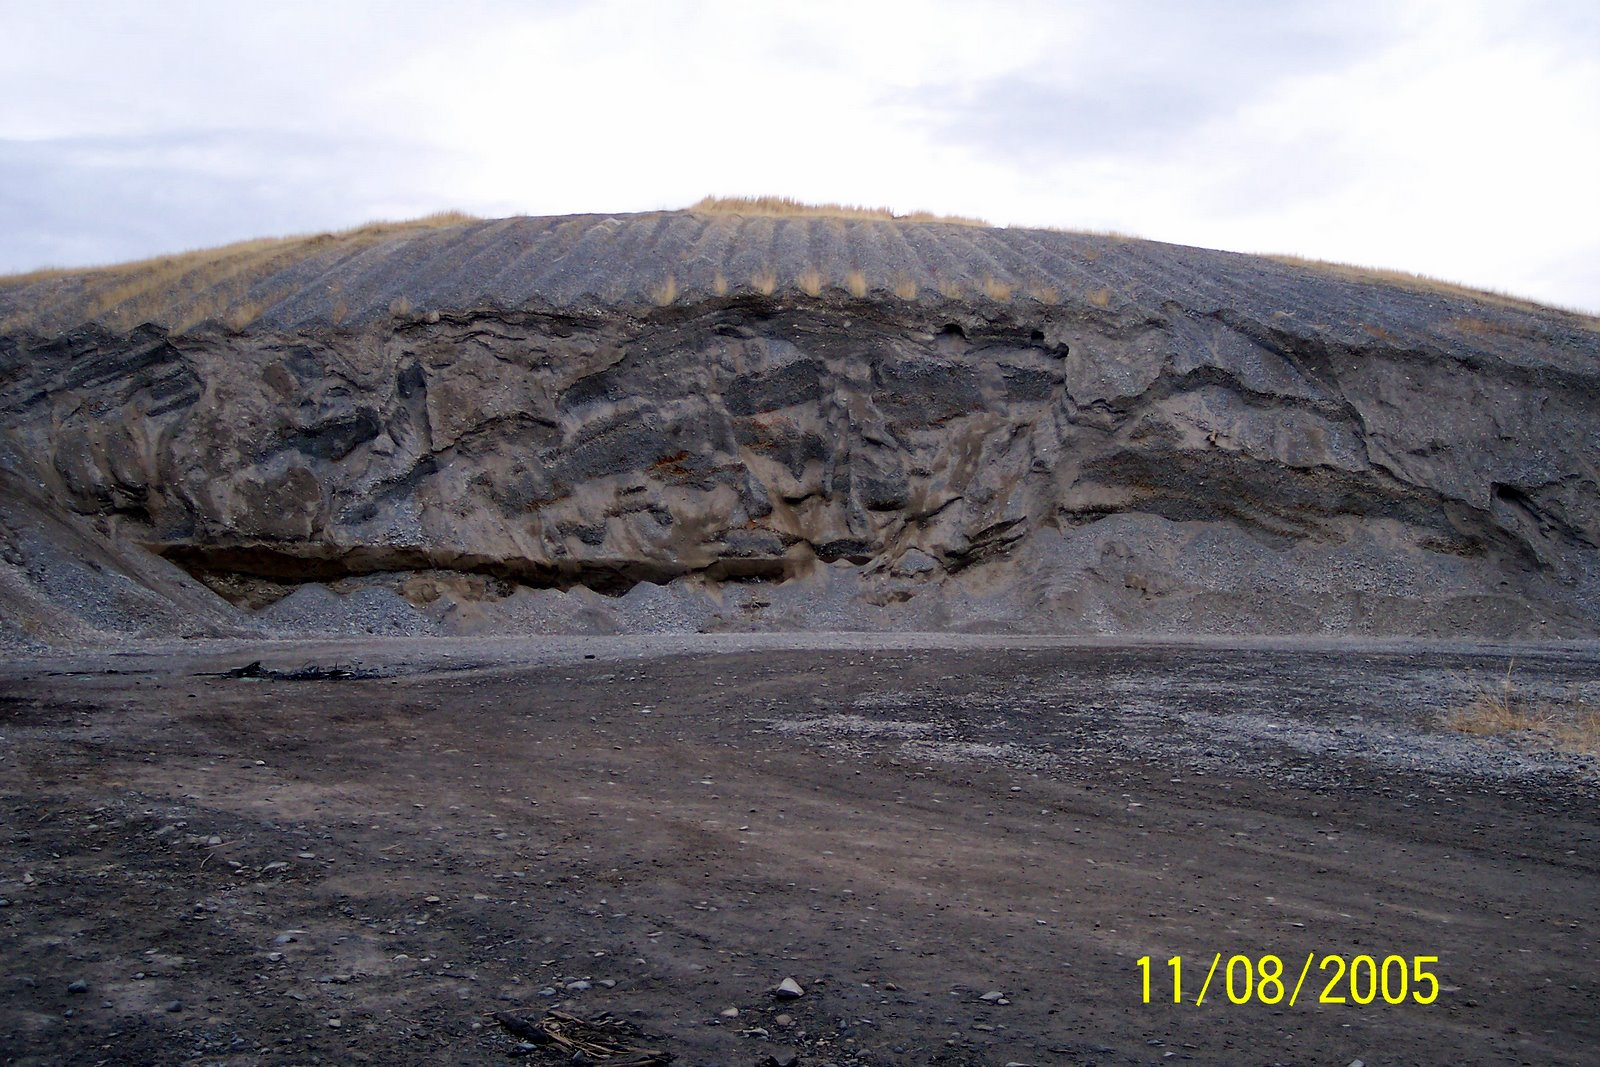 WELLSVILLE CITY'S BASIN HILL GRAVEL PIT. THE SOURCE OF THE PIT RUN GRAVEL.